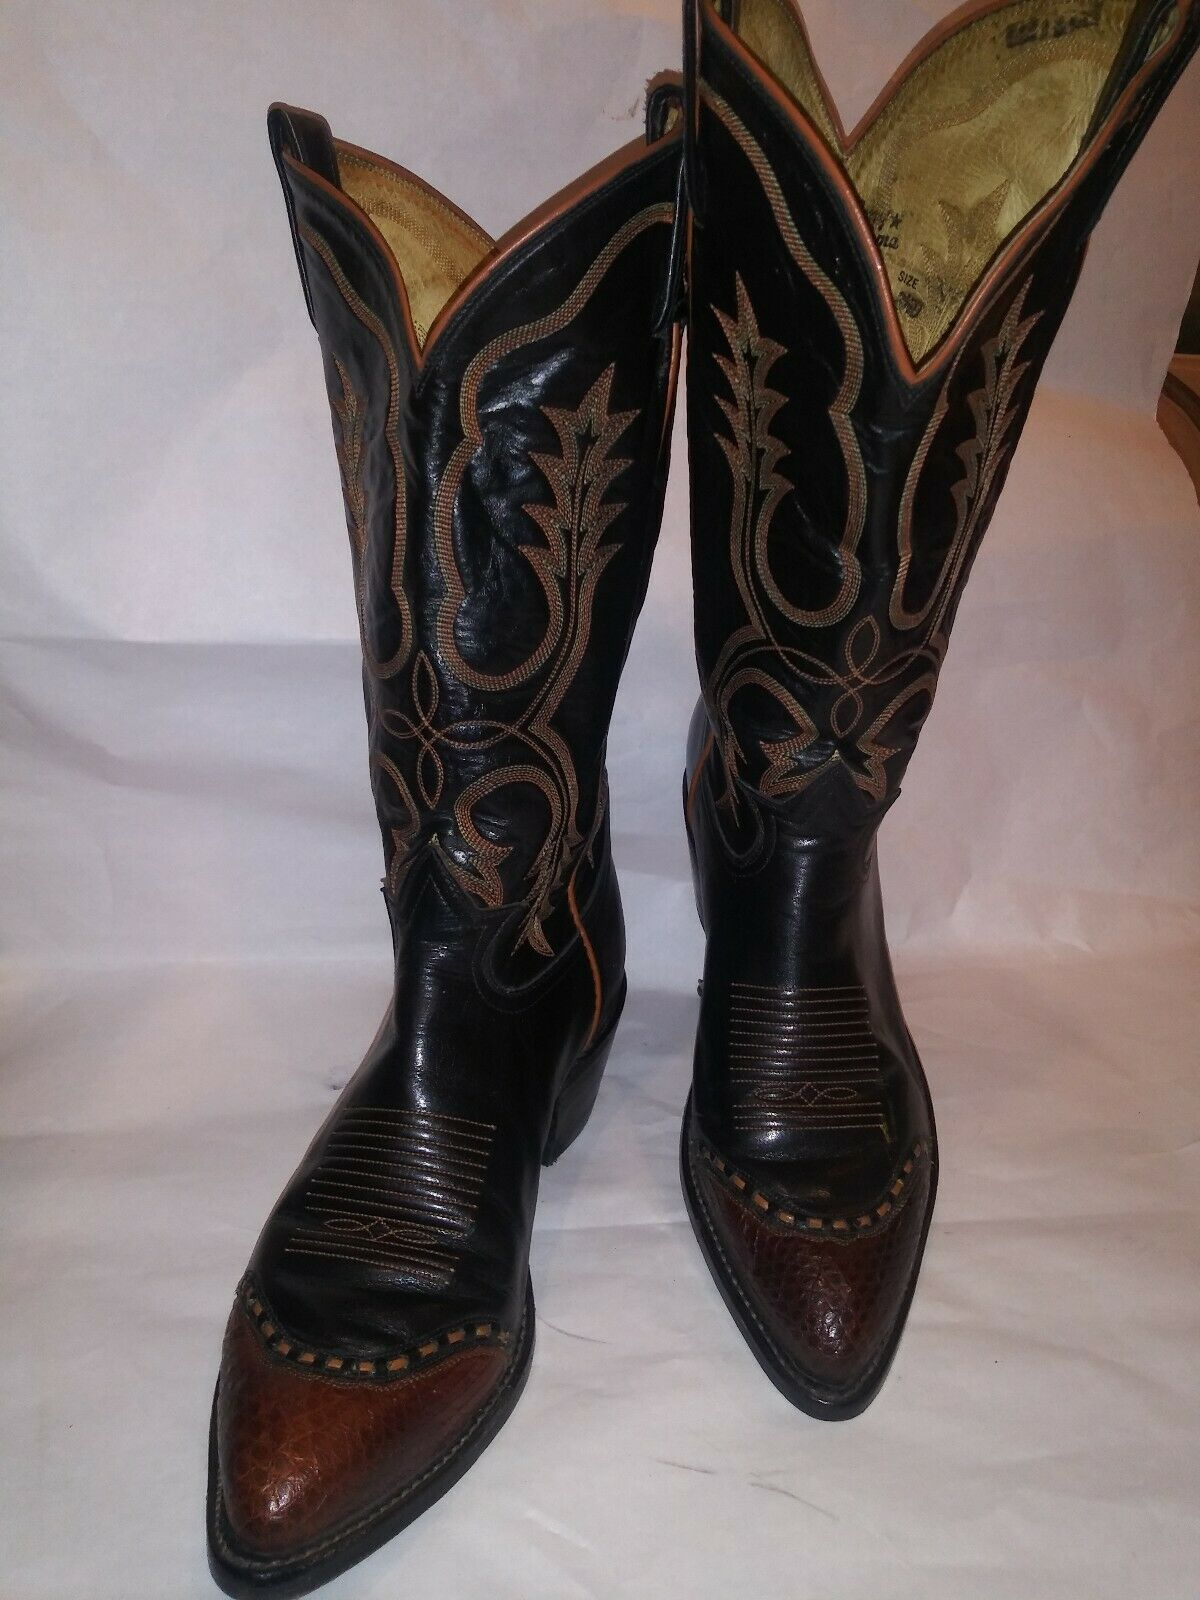 Tony Lama 6814 Lizard Skin Tip Leather Cowboy Boots-Size 8.5